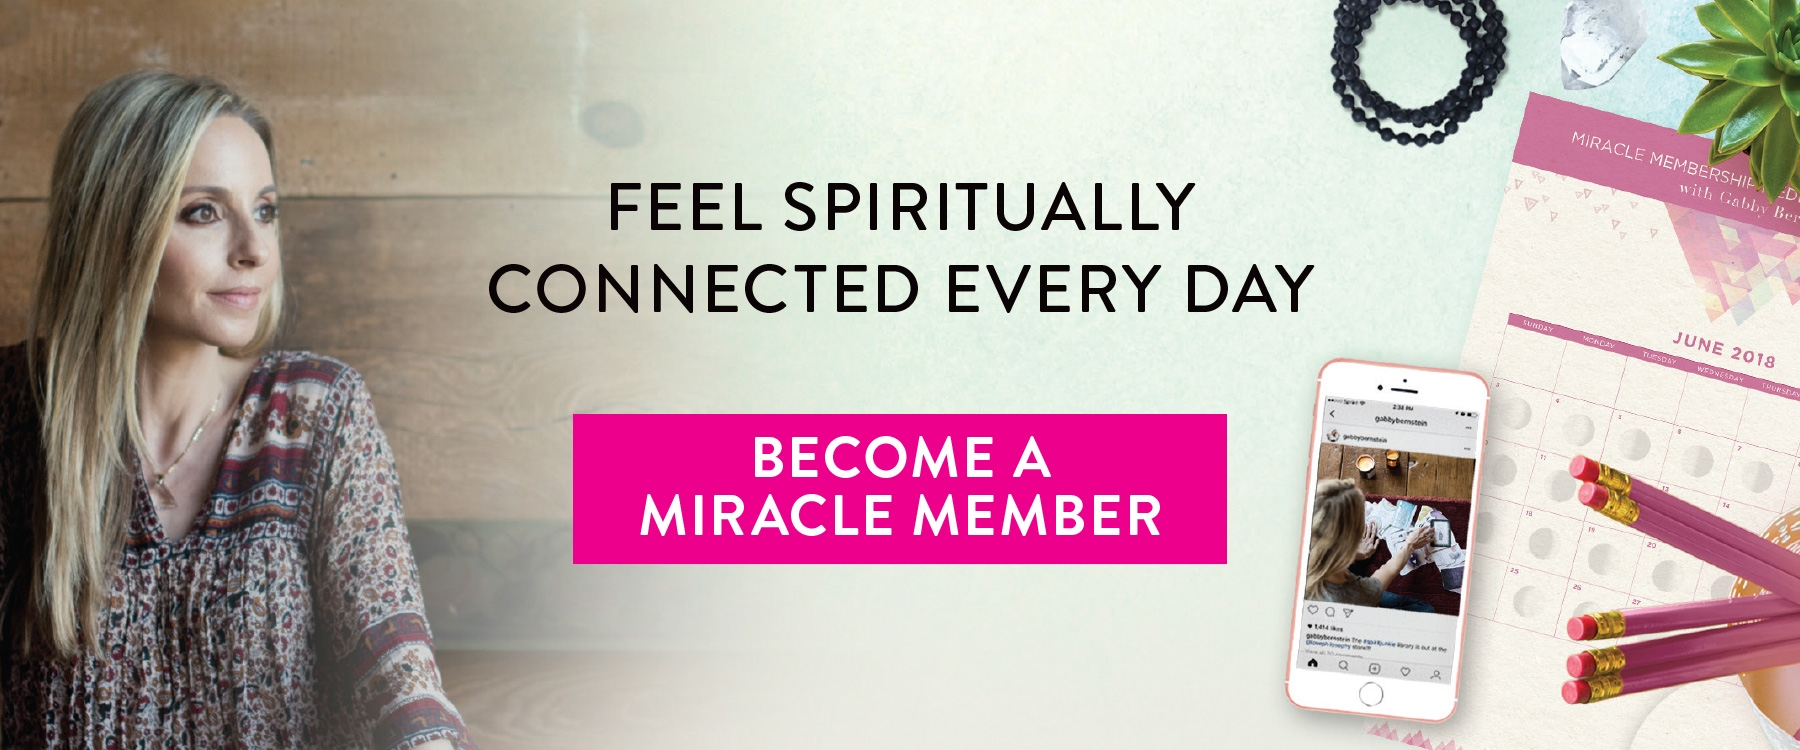 Feel spiritually connected every day | Gabby Bernstein's Miracle Membership